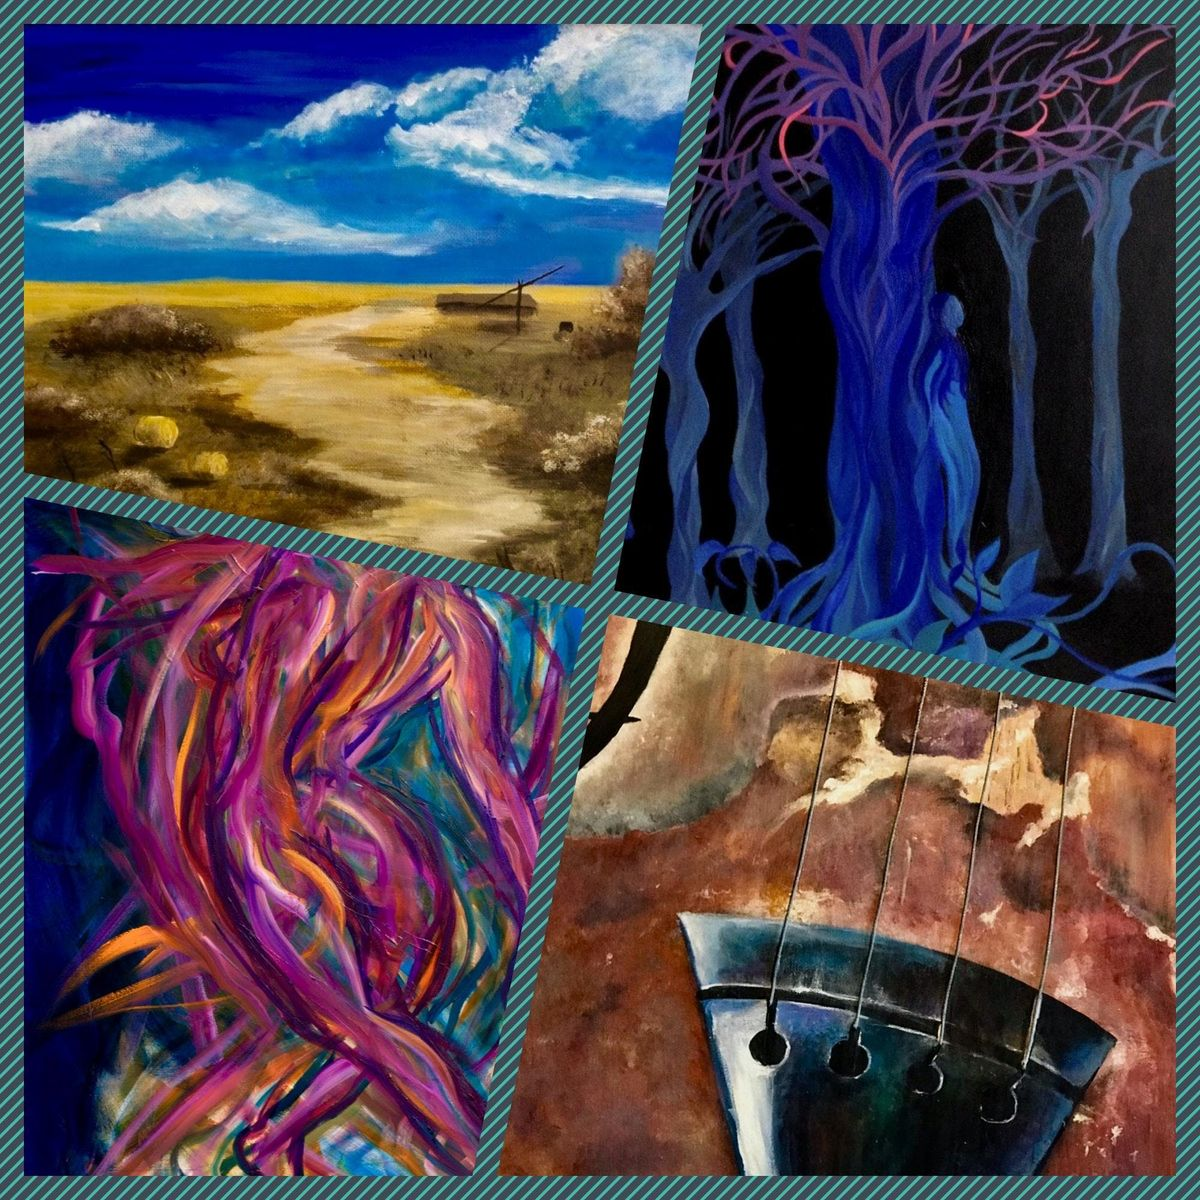 Waves Landscapes and Rhythms - Art Exhibition